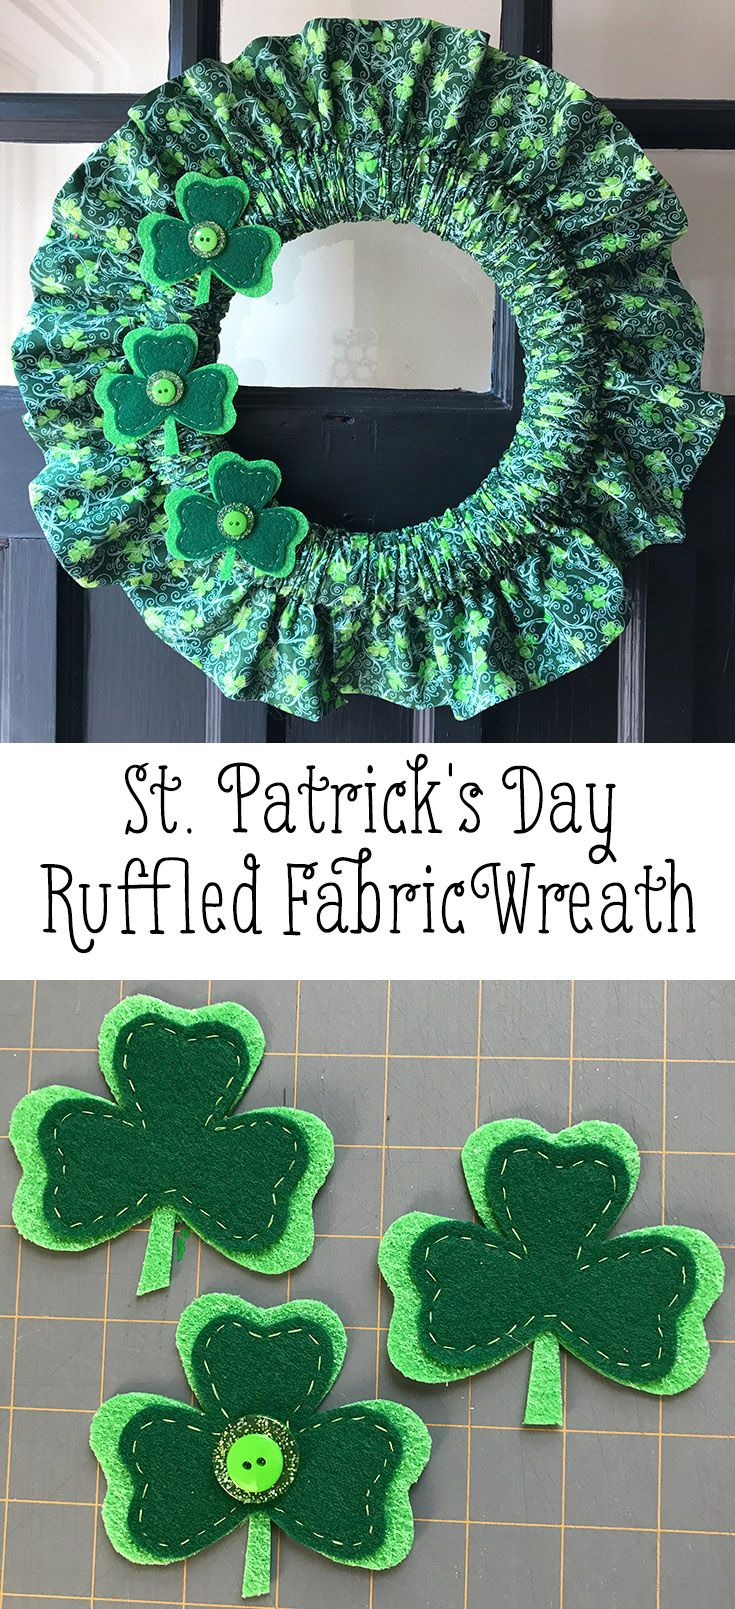 St. Patrick's Day Holiday Fabric Wreath Tutorial. Make a cute ruffled fabric wreath in two hours or less. Quick and easy!